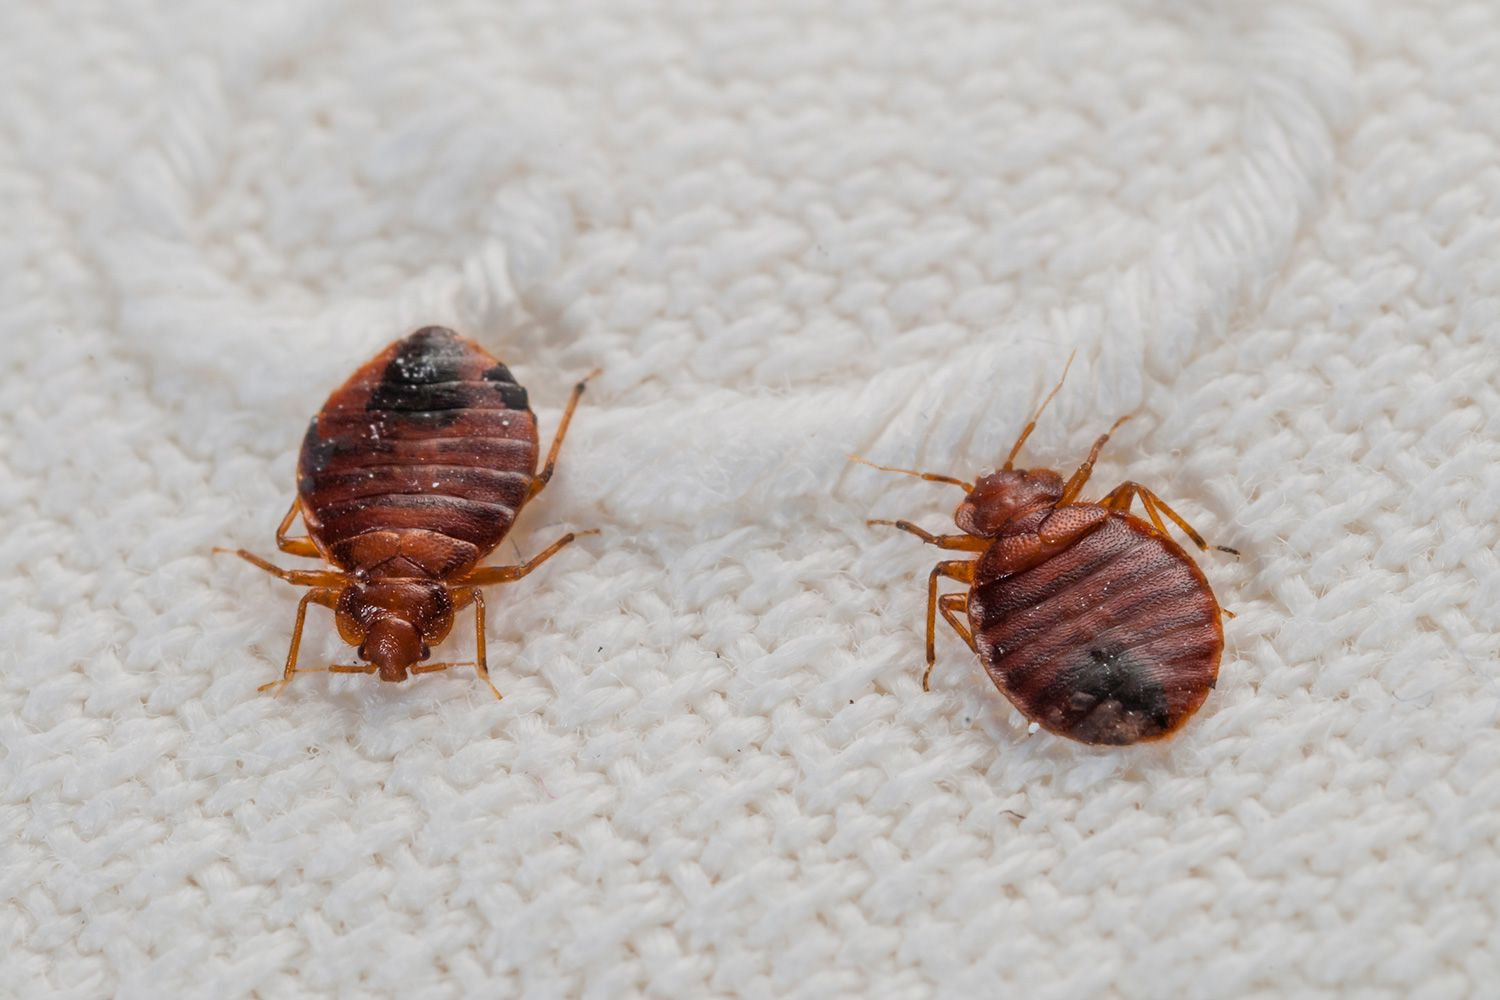 . 10 Myths and Misconceptions About Bed Bugs